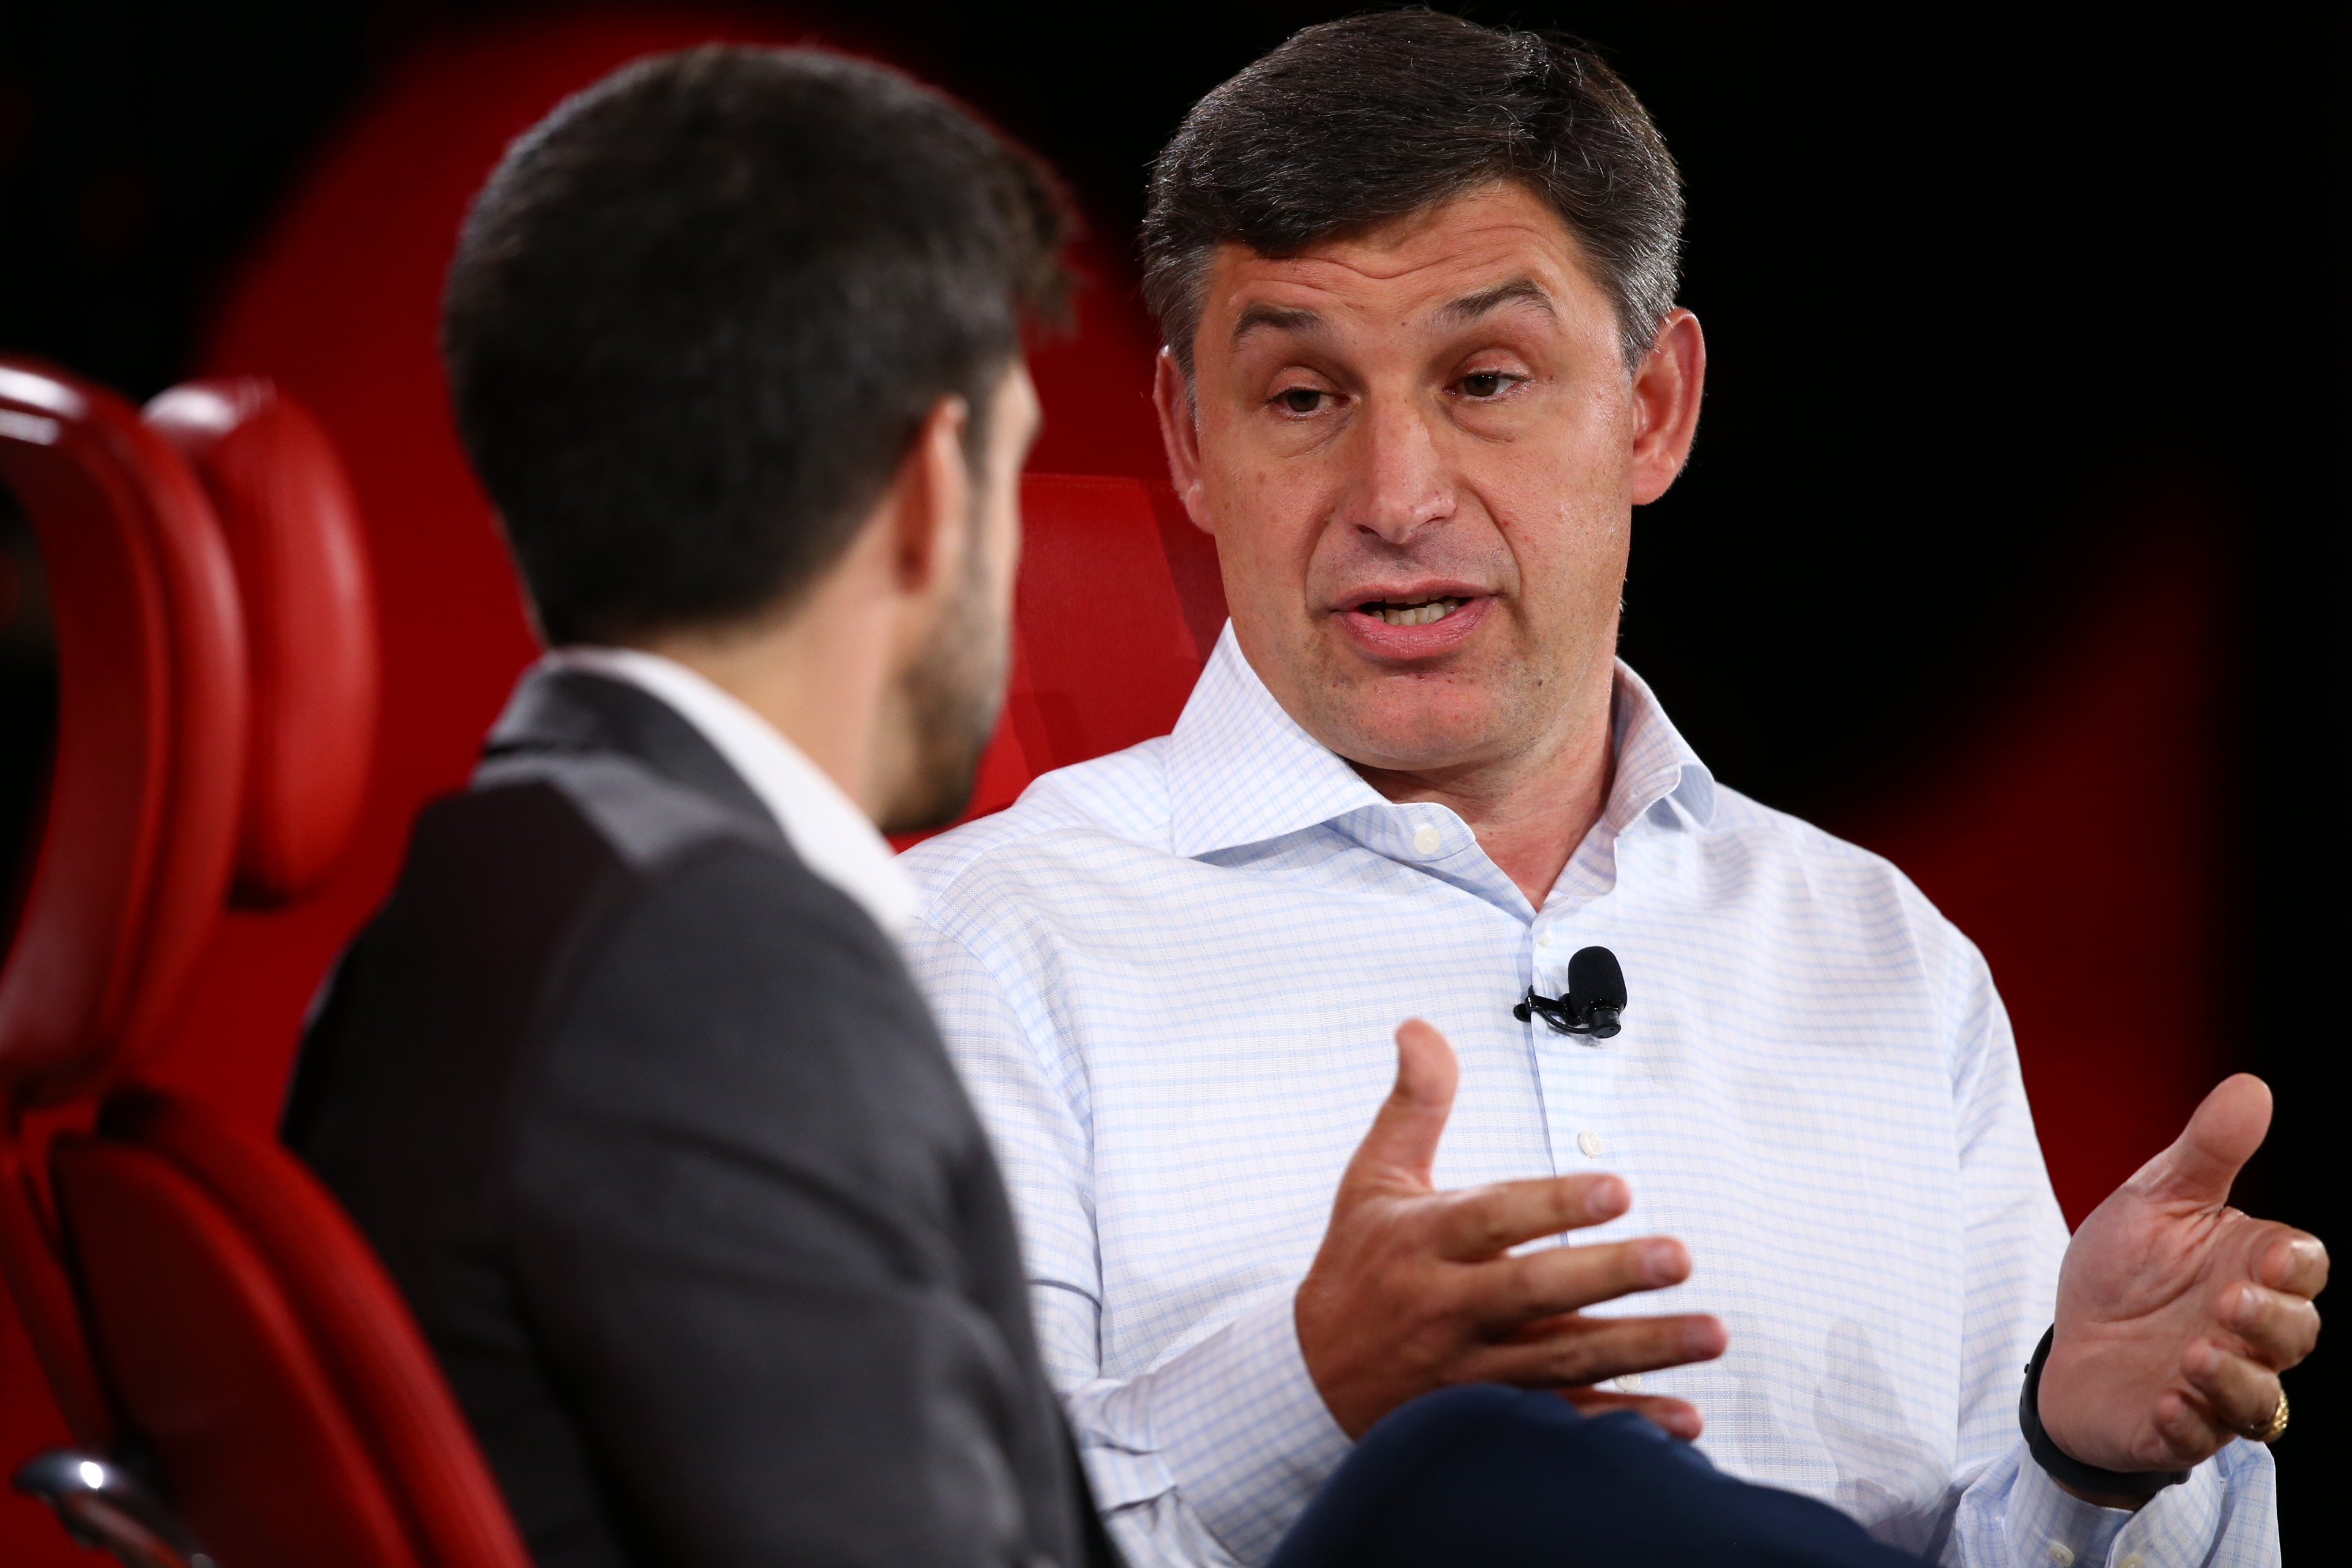 Anthony Noto onstage at Code Conference 2019.